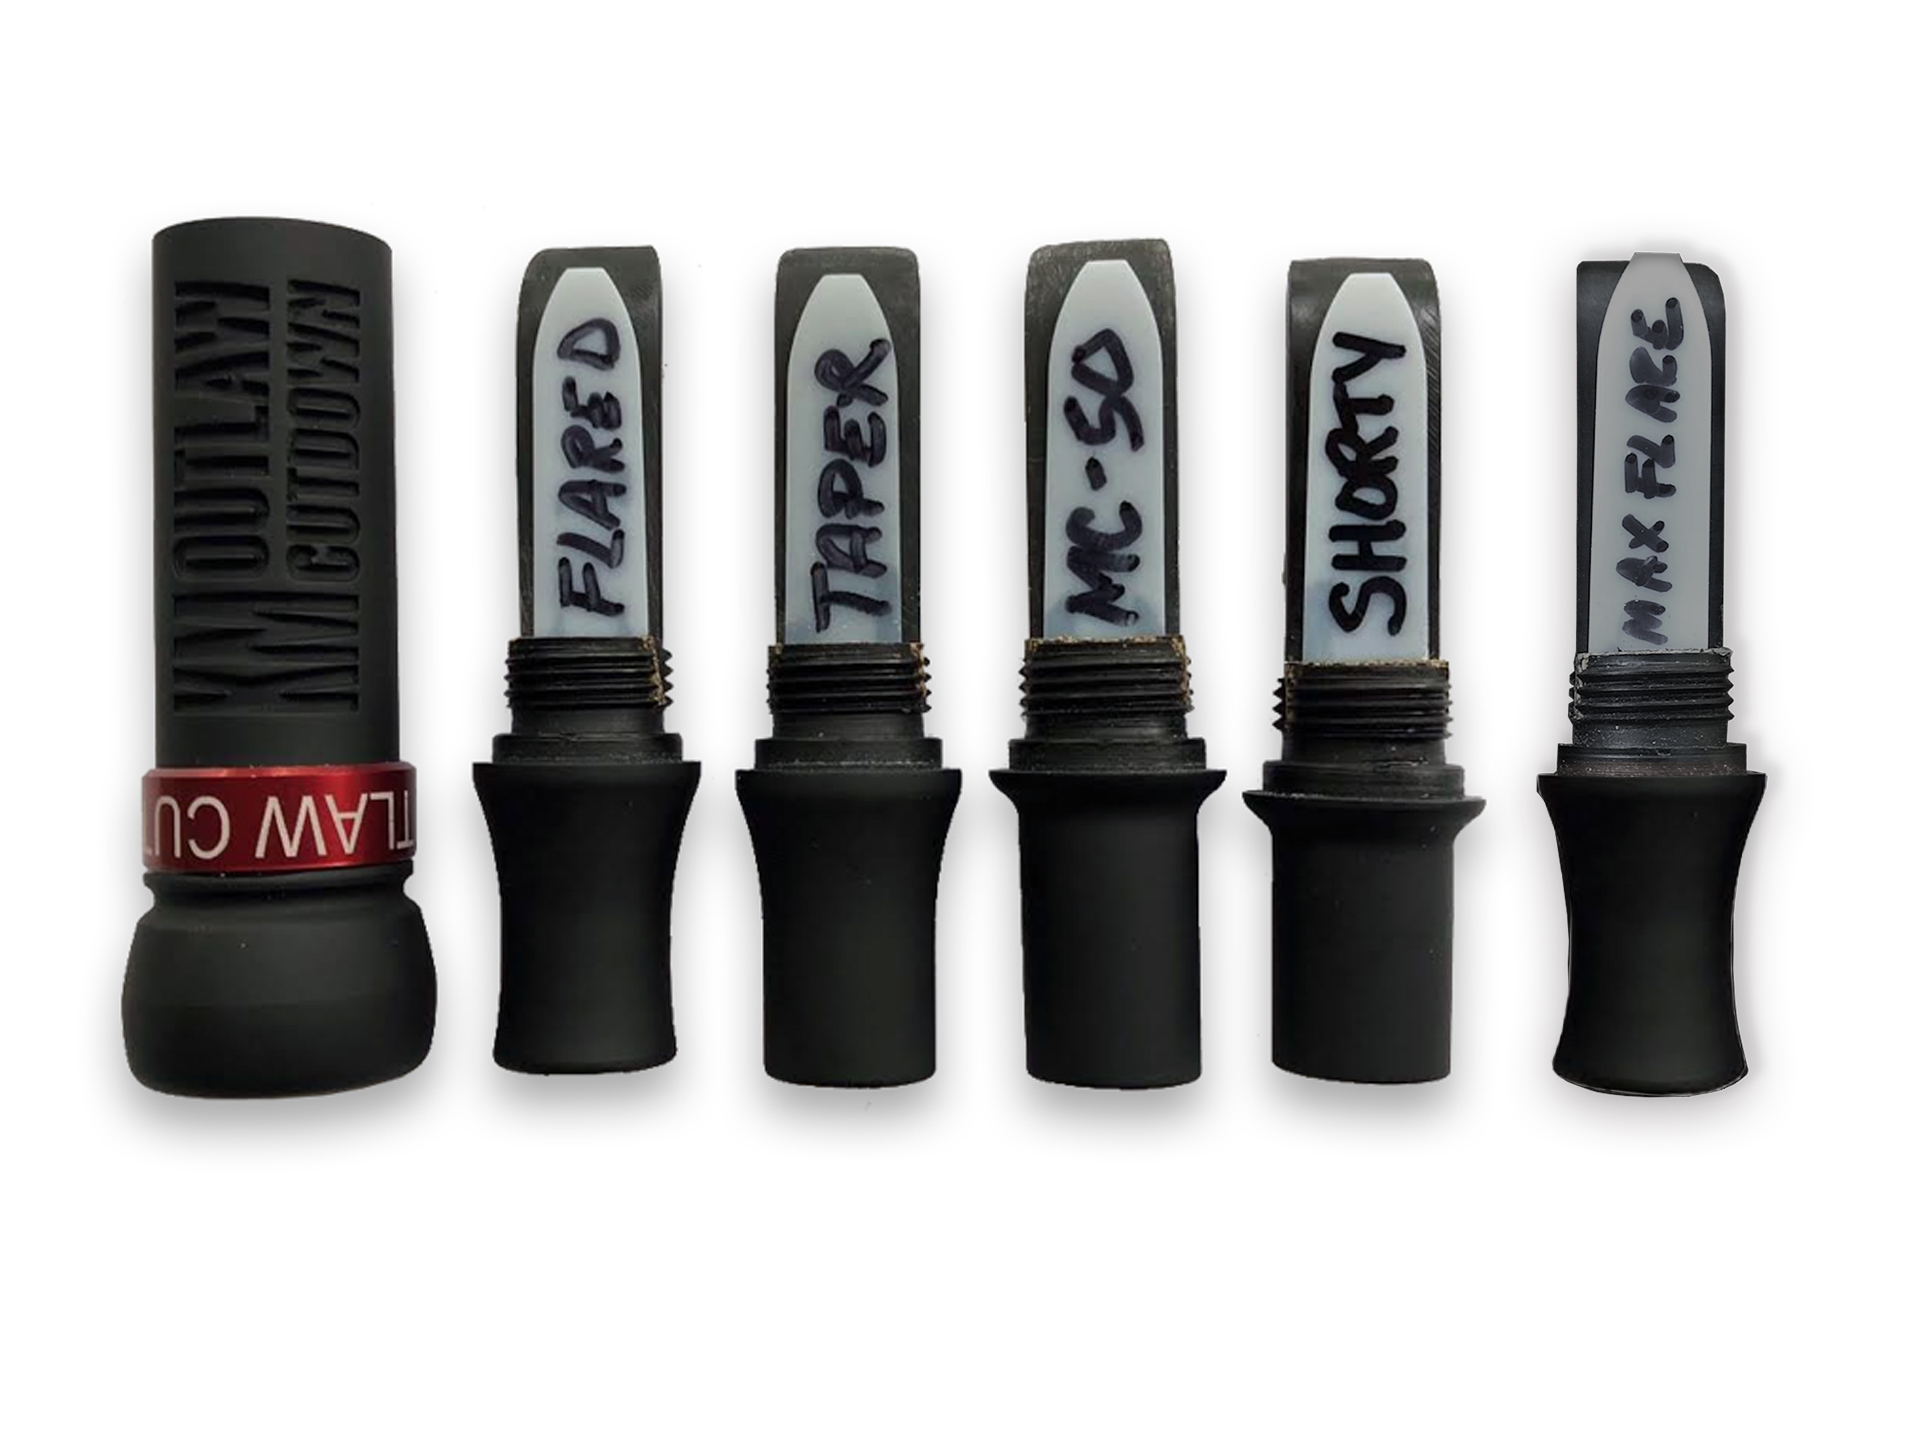 Flat Black KM OUTLAW CUTDOWN Duck Call and Red Band with 5 Interchangeable Duck Call Cast Mold Inserts